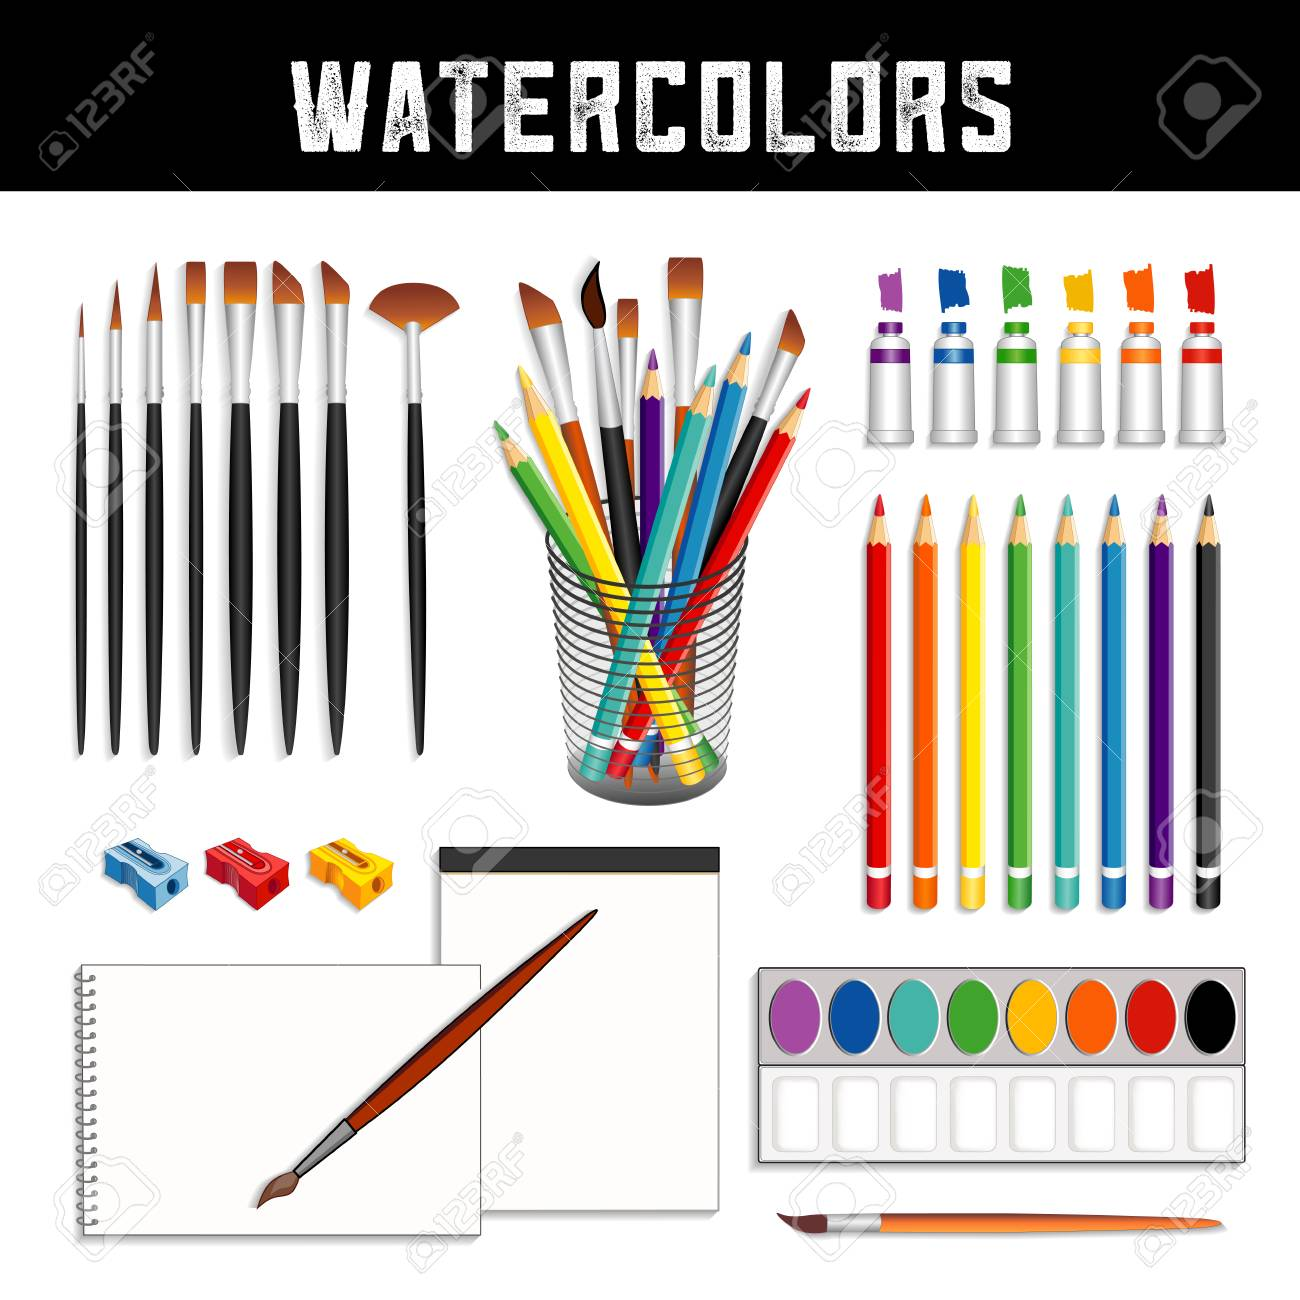 Watercolor tools and supplies: tubes of paints, field box, desk organizer, brushes, pencils, sharpeners and papers for fine art painting and illustration, isolated on white background. - 102211253